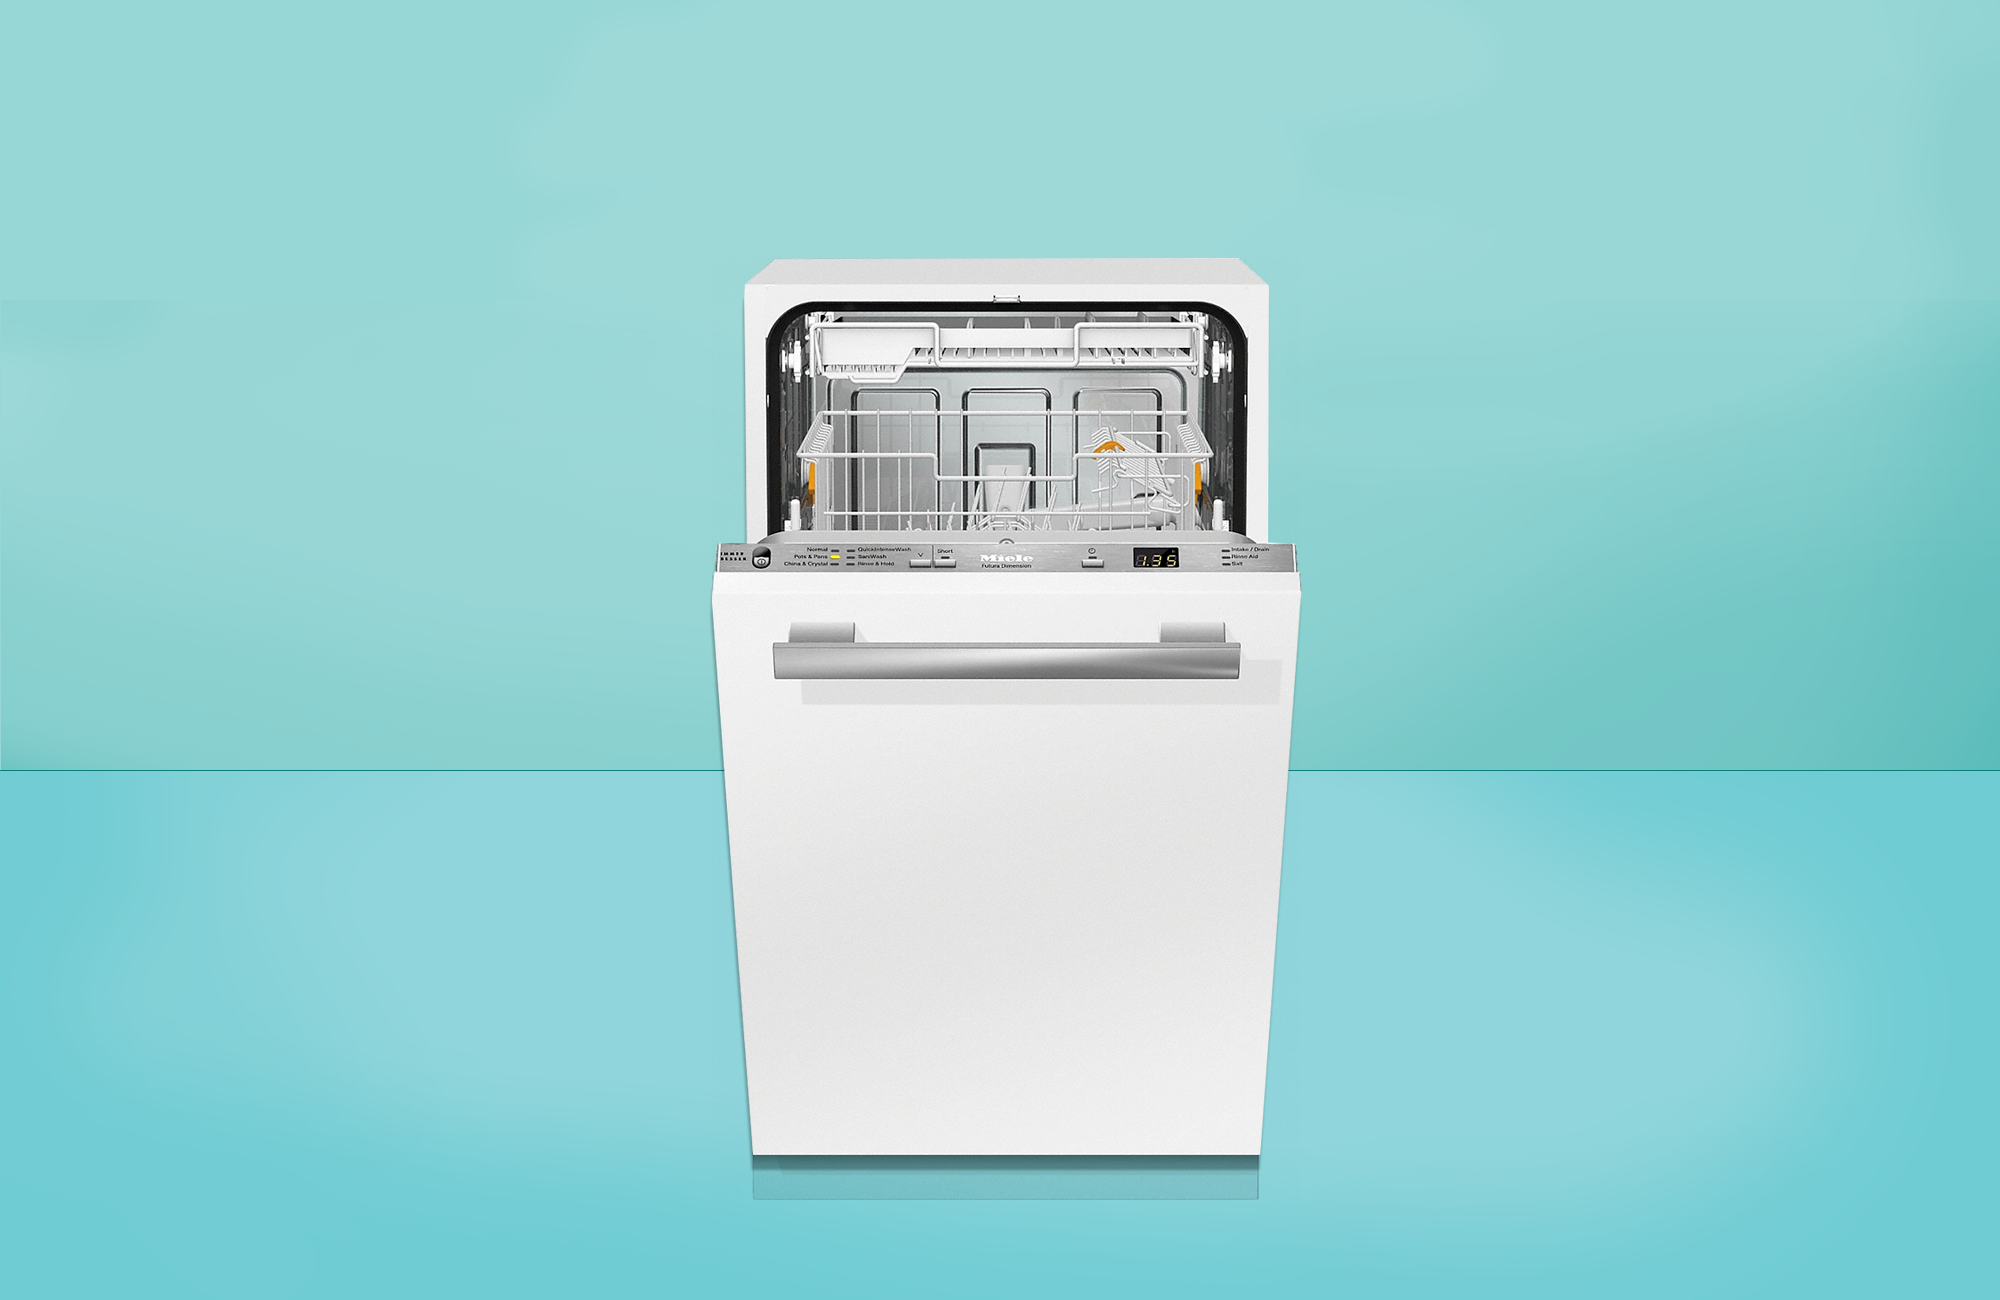 The Best Dishwashers Of 2020 Top Dishwasher Reviews For Every Budget